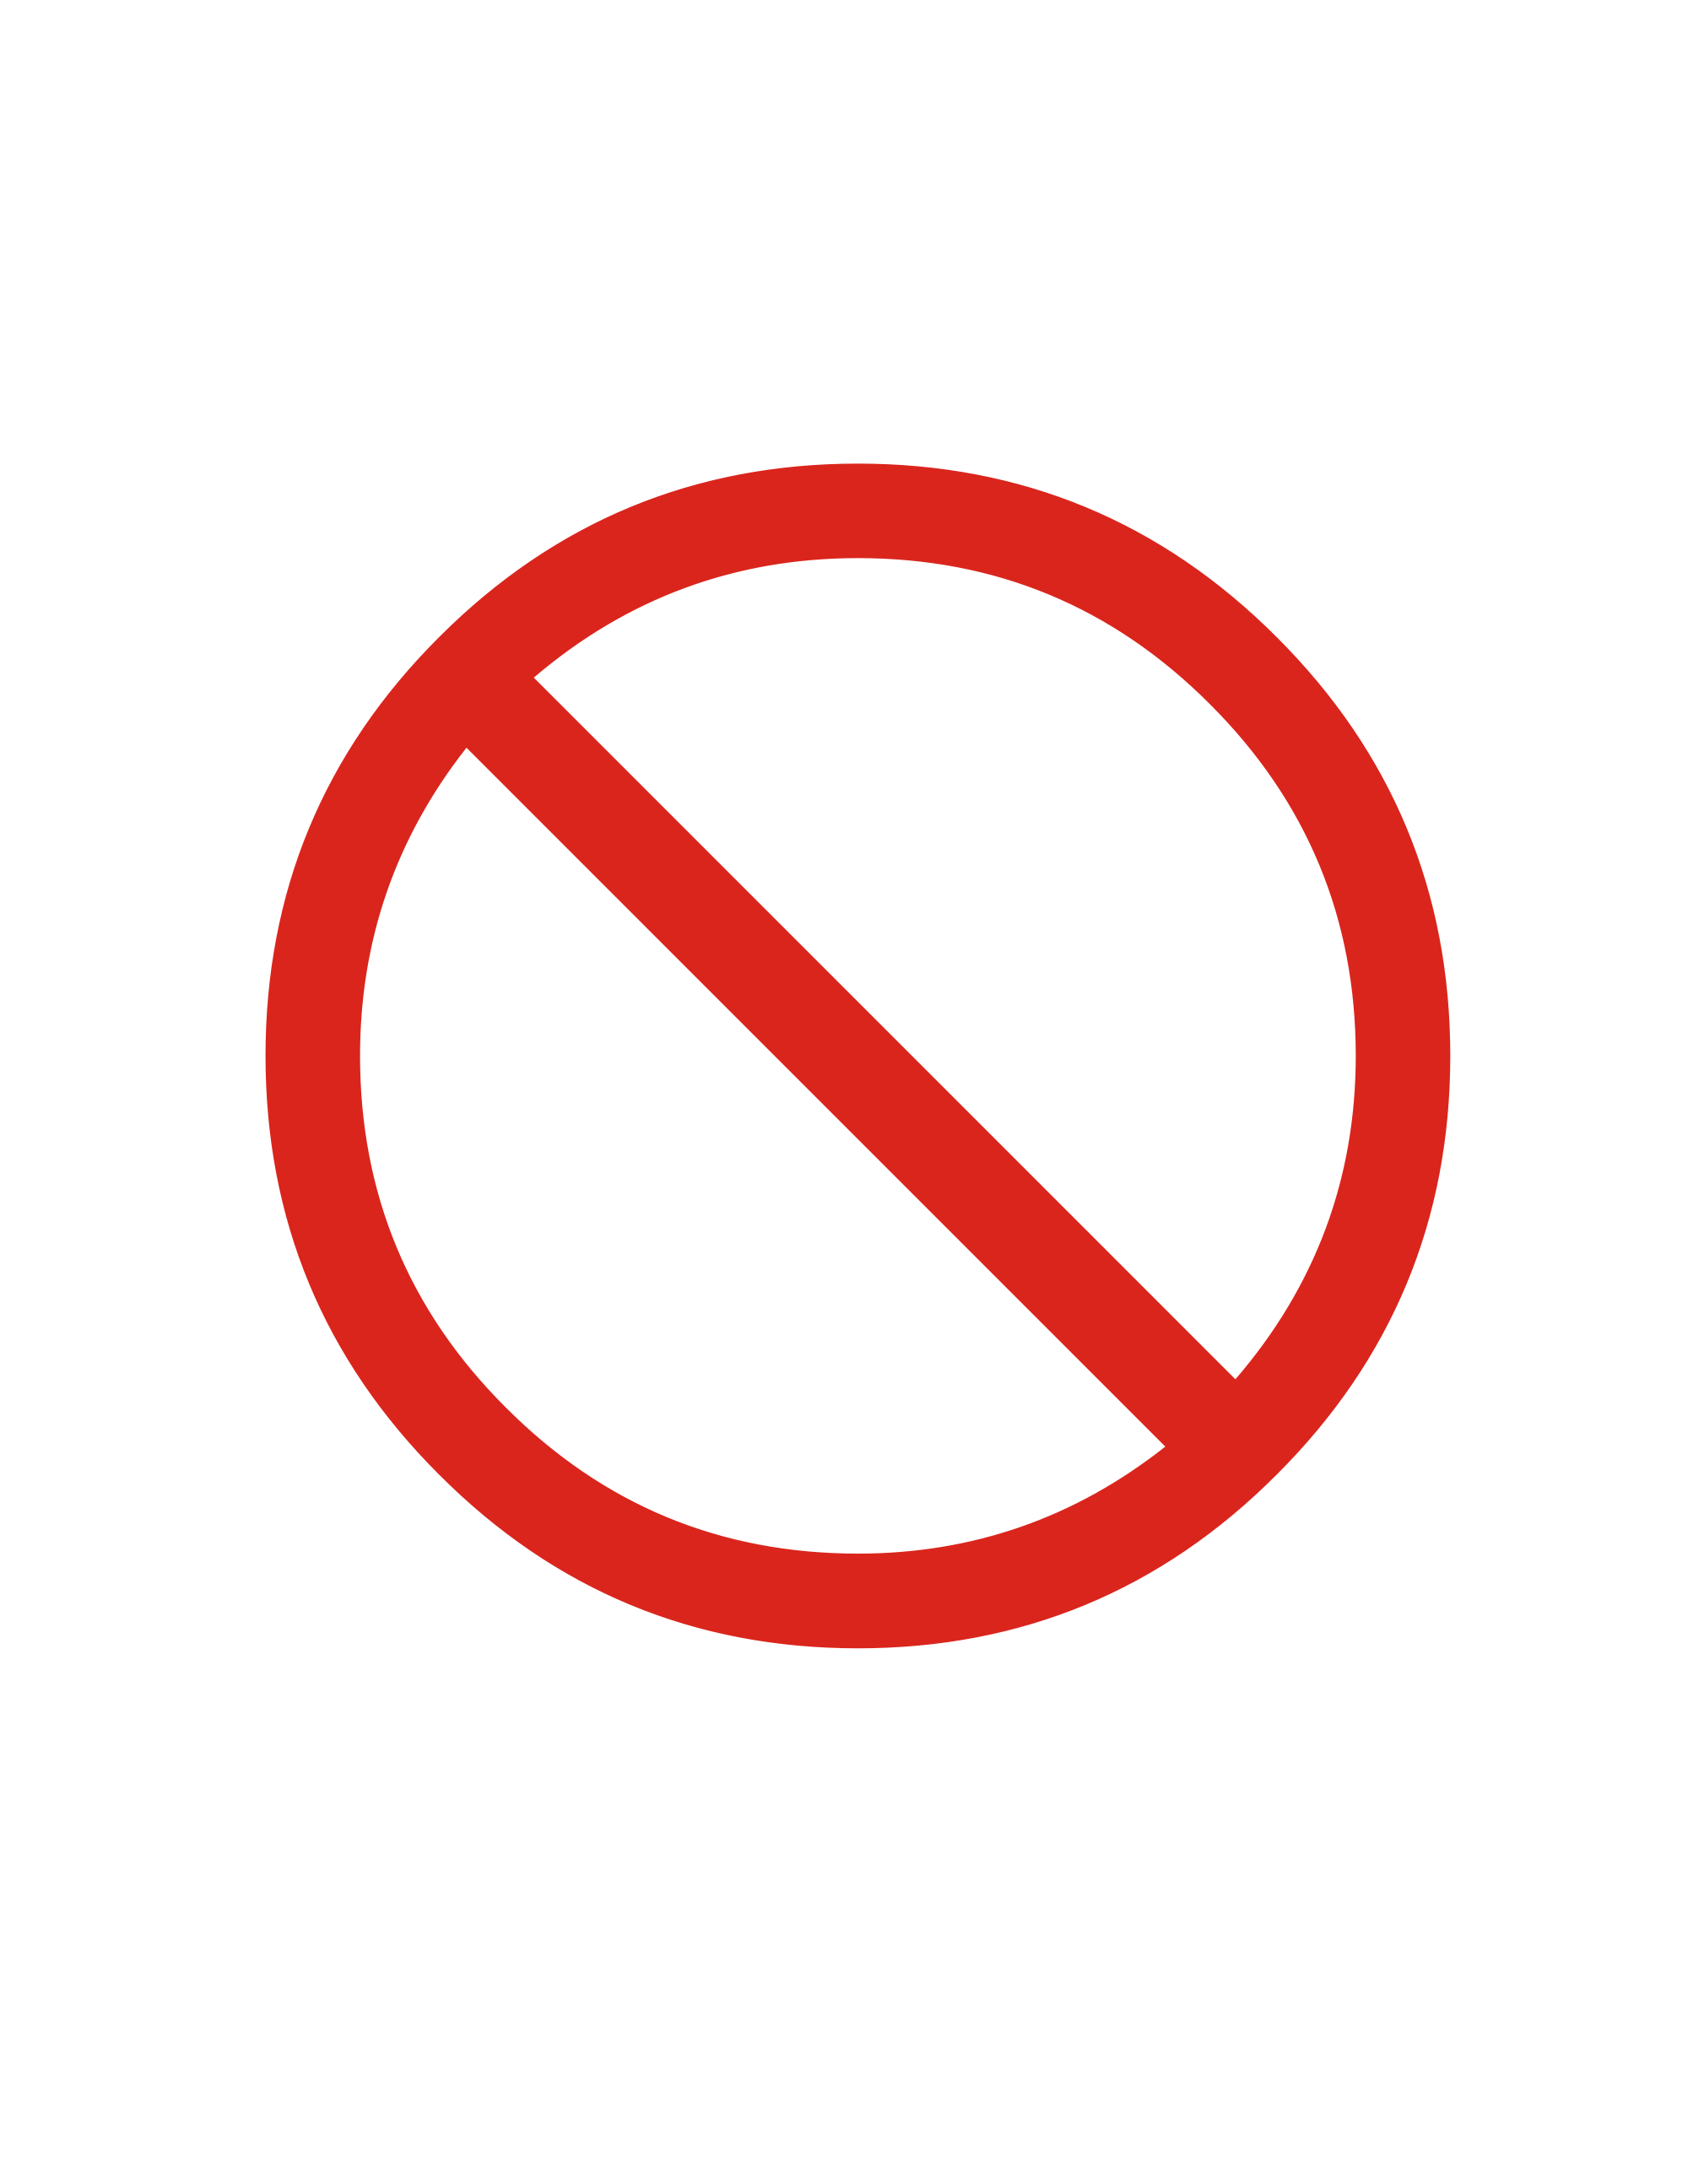 Free Prohibited Sign Transparent, Download Free Clip Art.